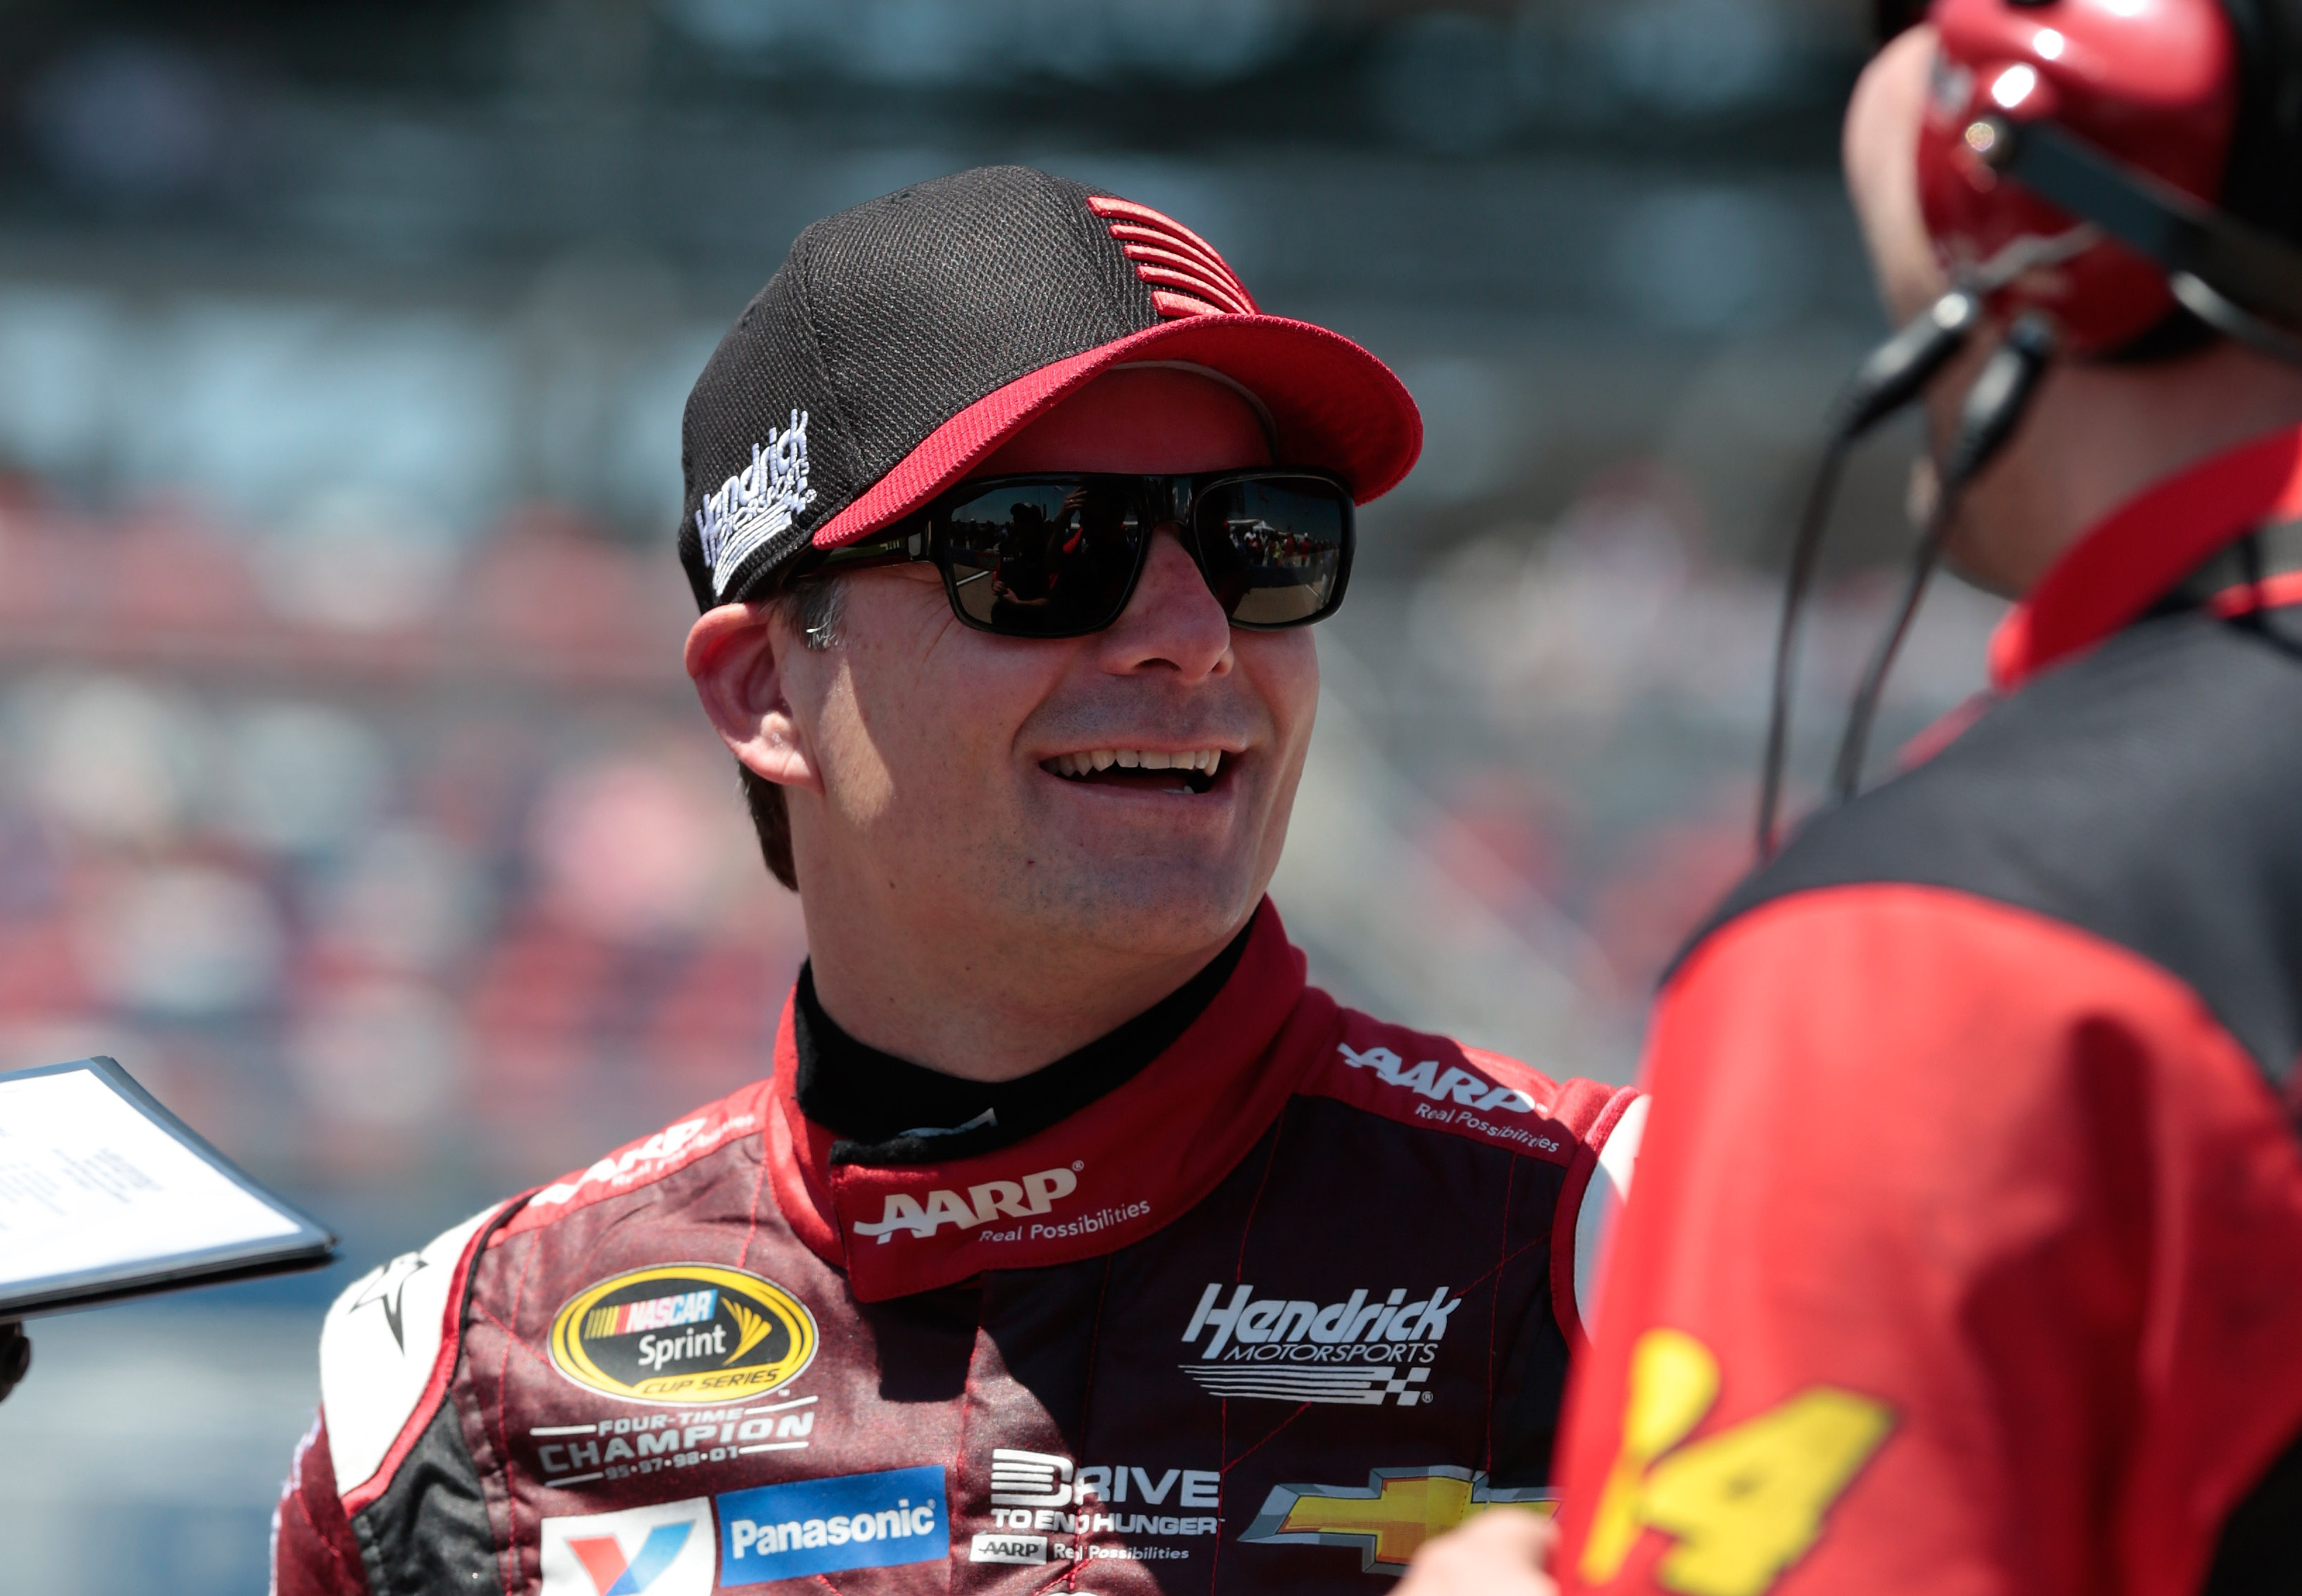 Driver Jeff Gordon smiles during qualifying for the NASCAR Sprint Cup Series auto race at Talladega Superspeedway, Saturday, May 2, 2015, in Talladega, Ala. Gordon, who is in his last season, qualified first for the pole. (AP Photo/Butch Dill)